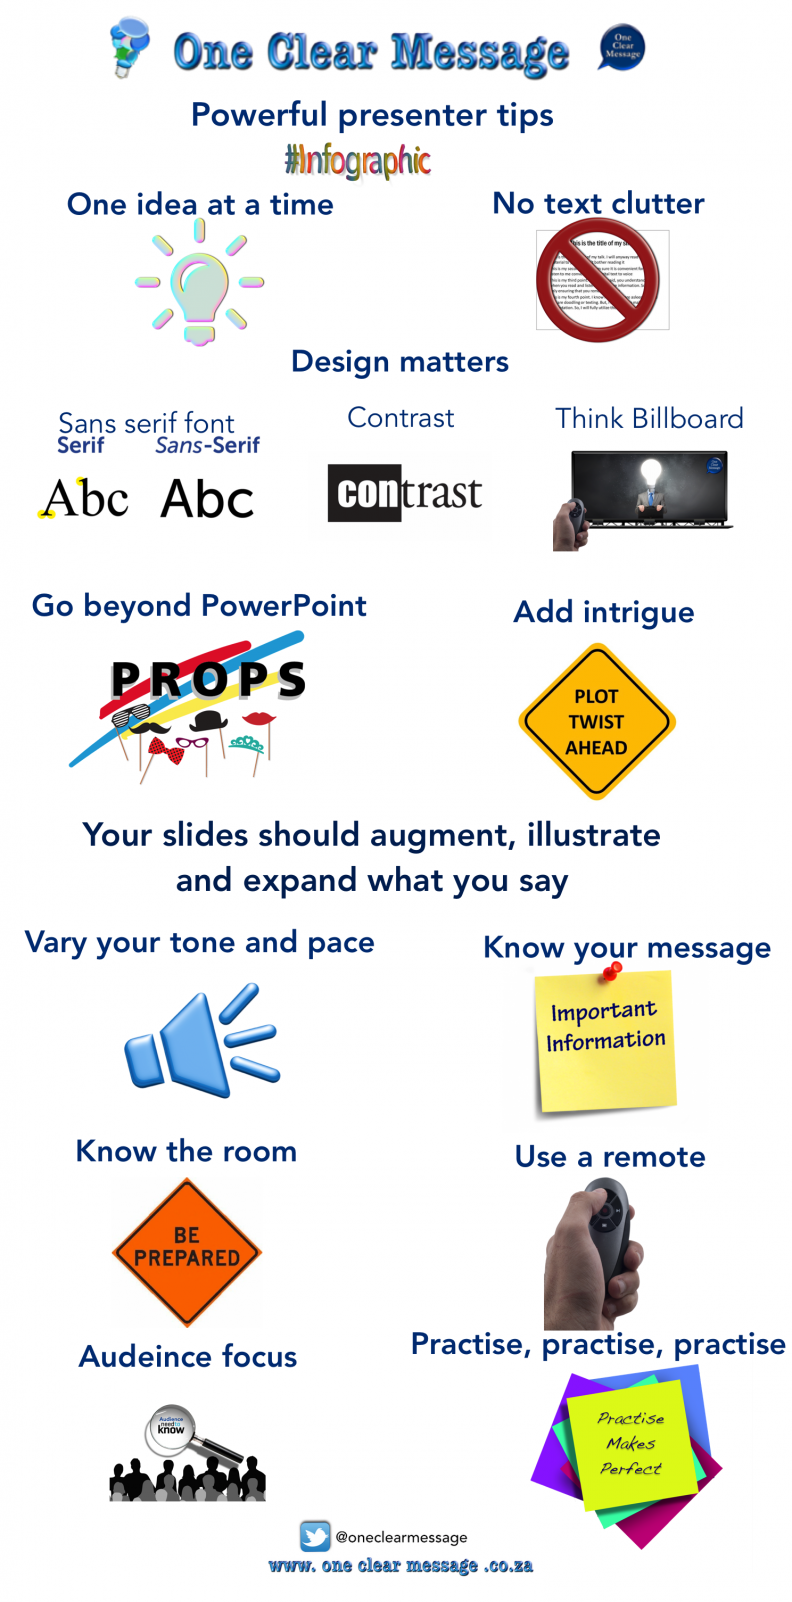 Powerful presenter tips infographic